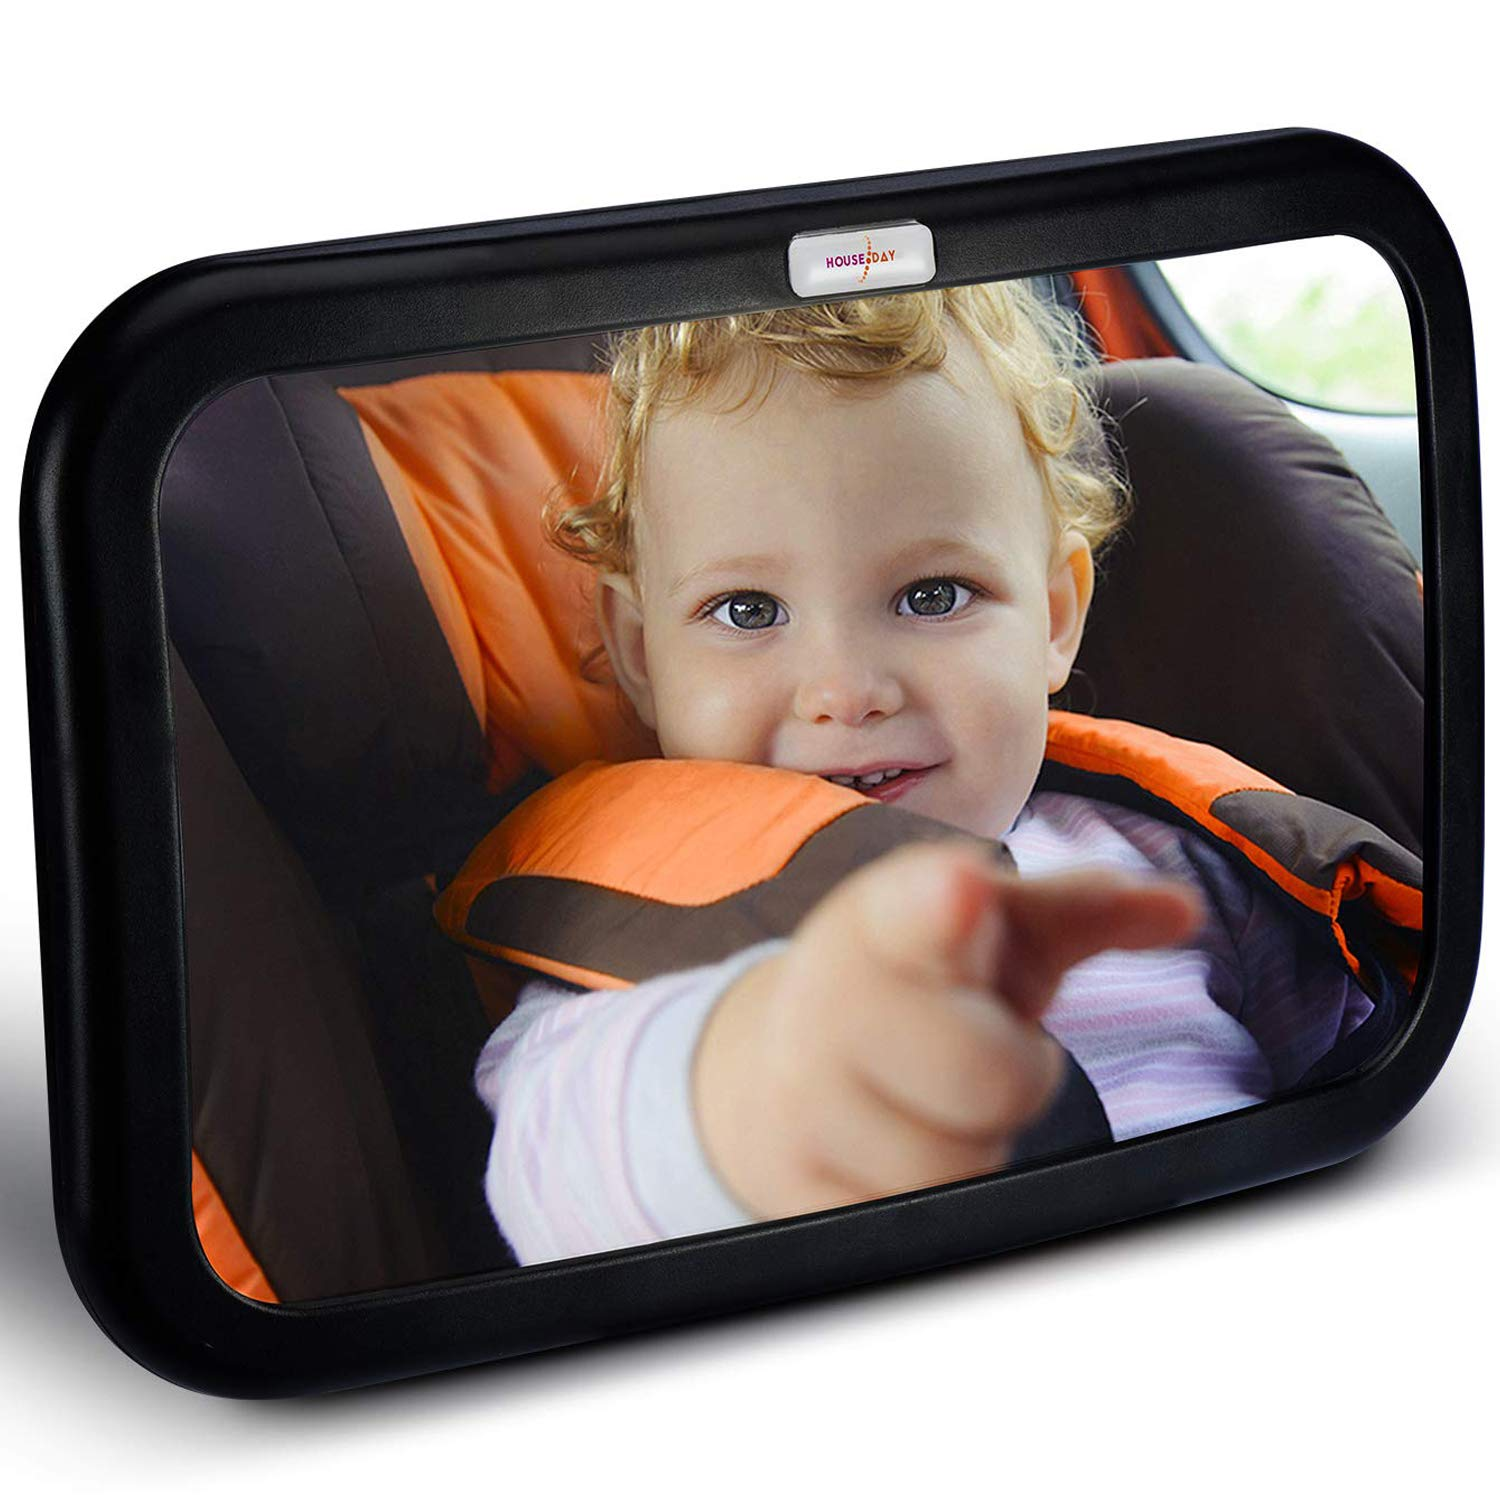 HOUSEDAY Baby Car Mirror Stable Wide View Infant in Rear Facing Seat Safety Shatterproof Crash Tested Car Seat Mirror